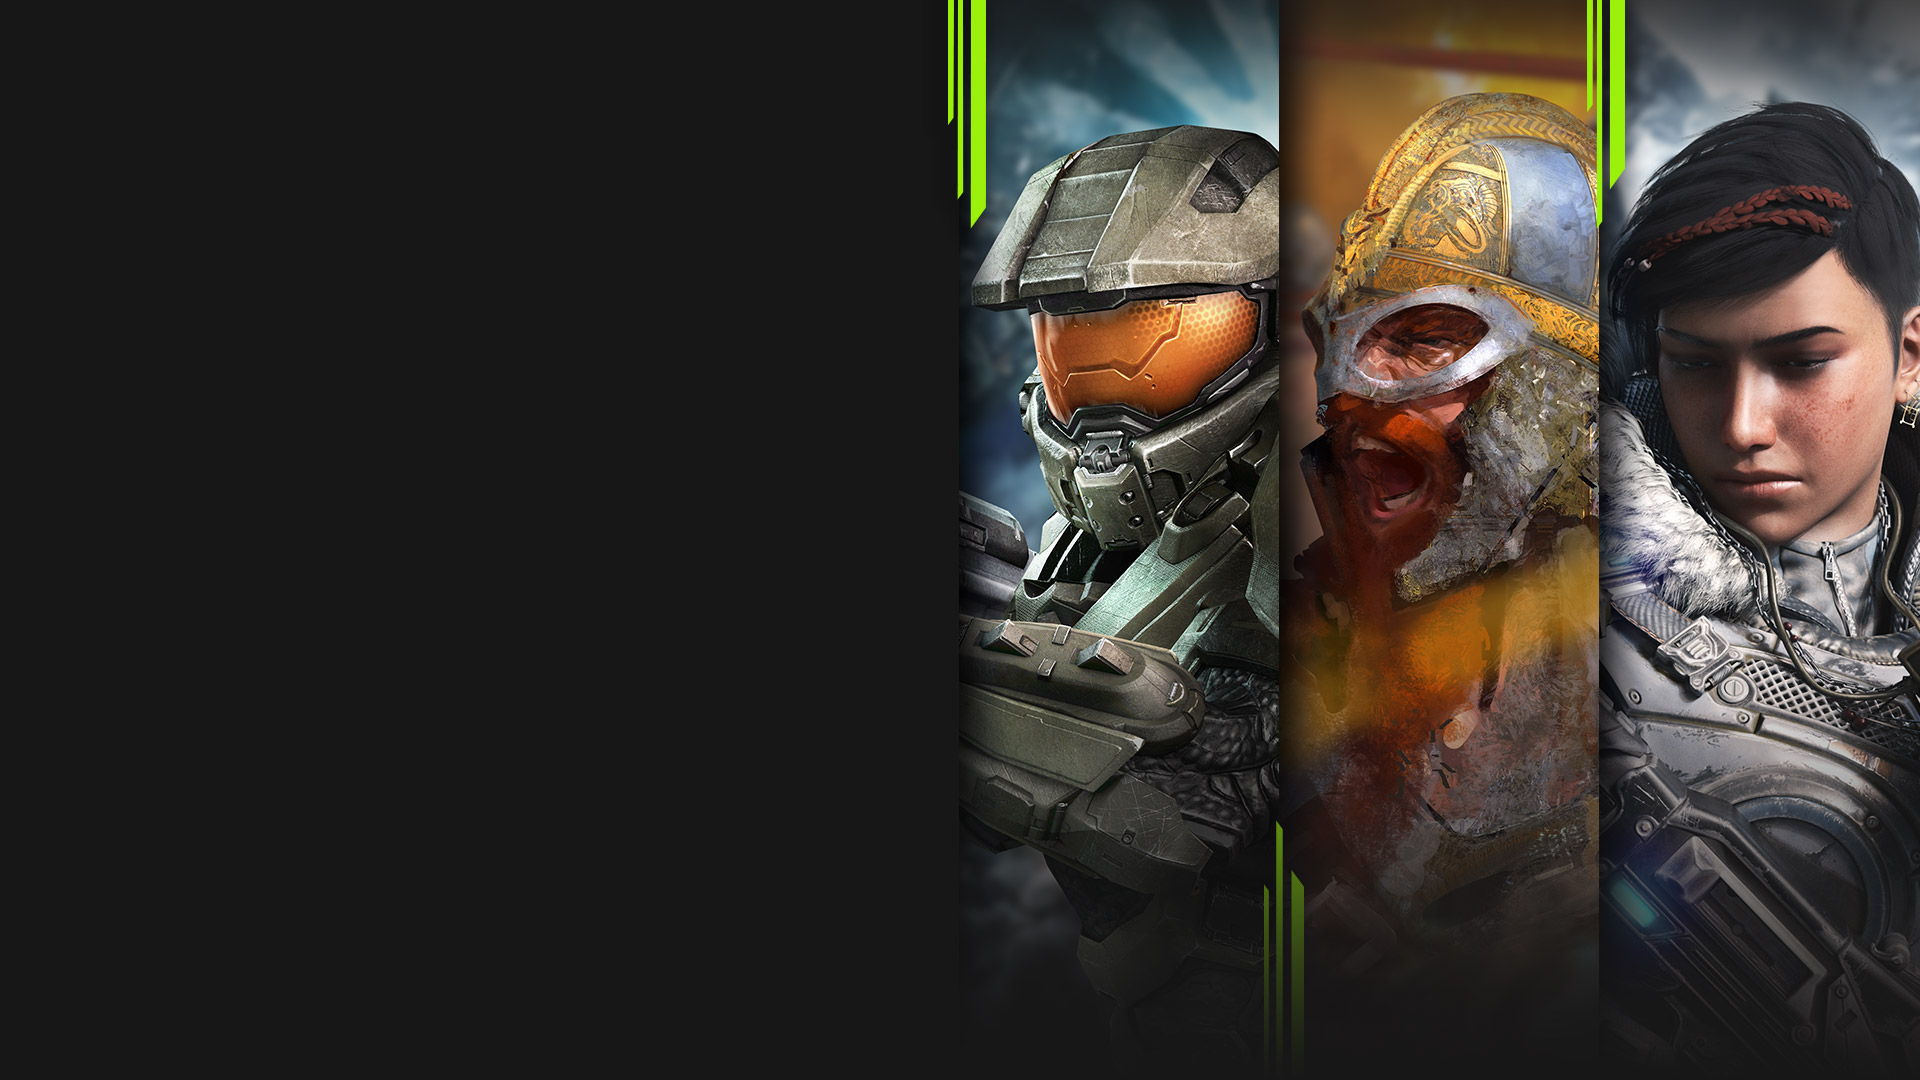 Game art from multiple Xbox Game Pass games including Halo 4, Age of Empires II: Definitive Edition, Gears 5, and Ori and the Will of the Wisps.